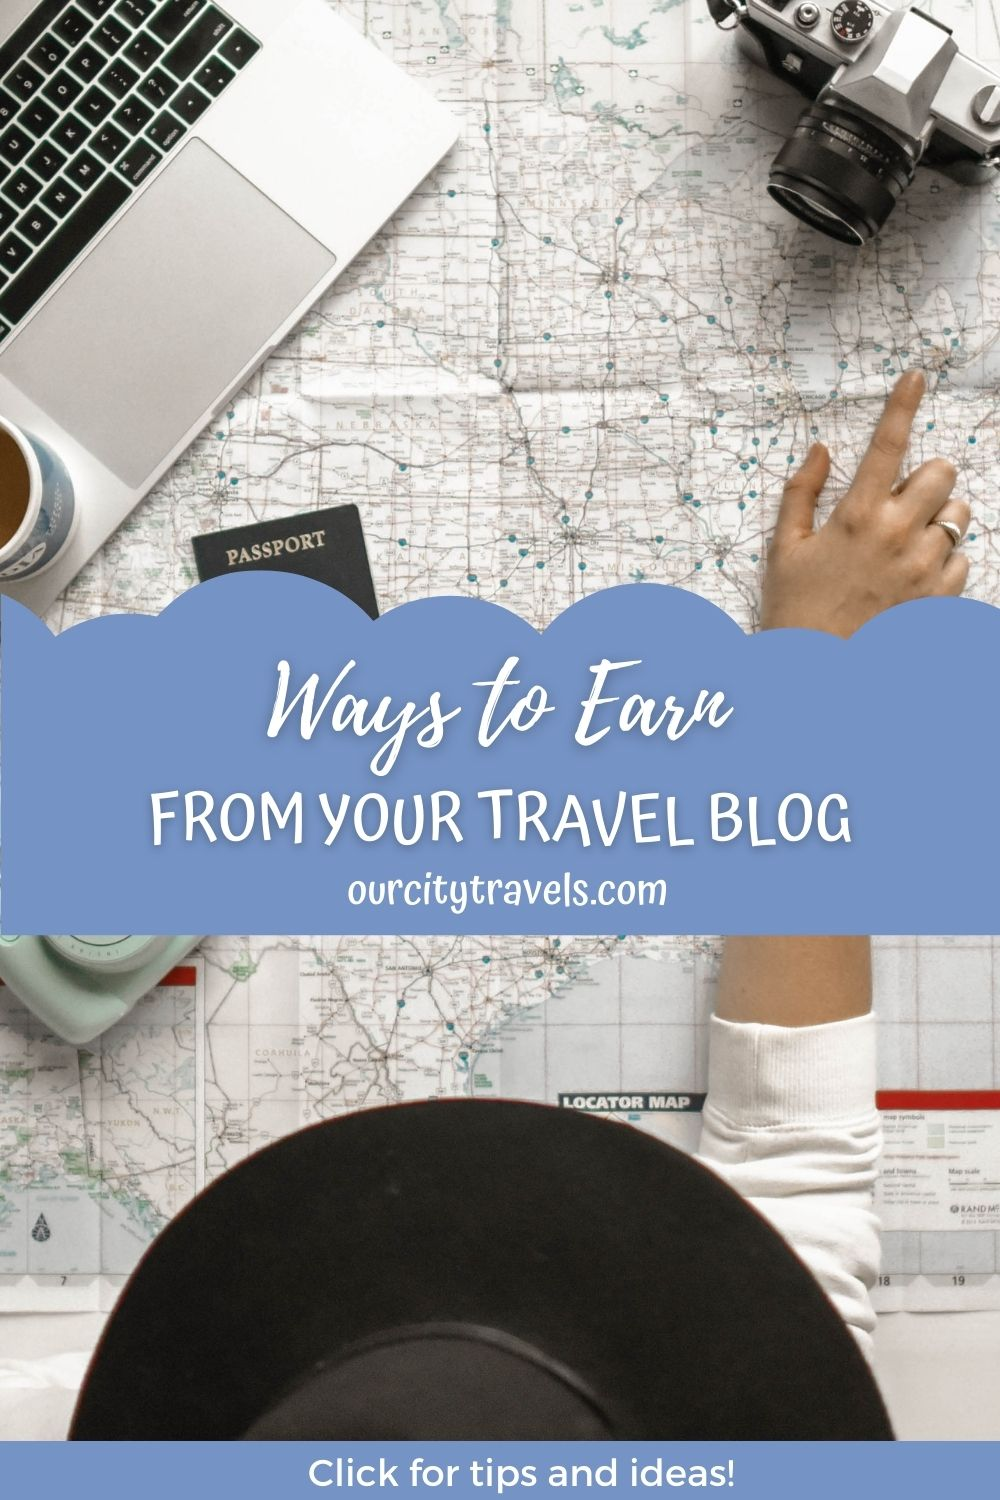 6 Ways to Earn from Your Travel Blog